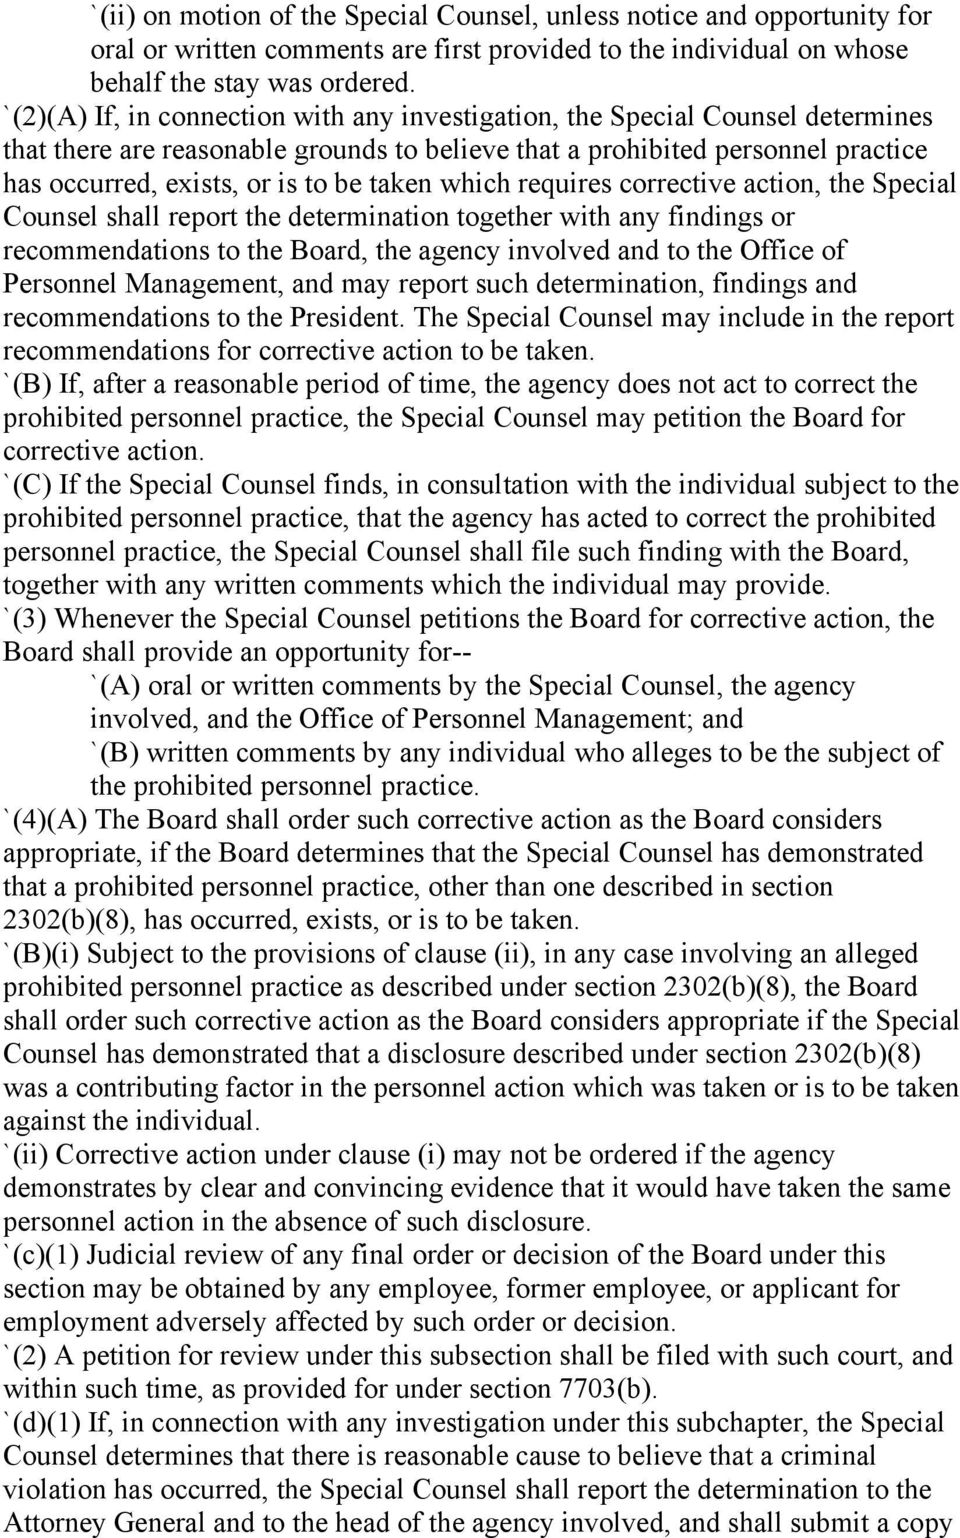 taken which requires corrective action, the Special Counsel shall report the determination together with any findings or recommendations to the Board, the agency involved and to the Office of